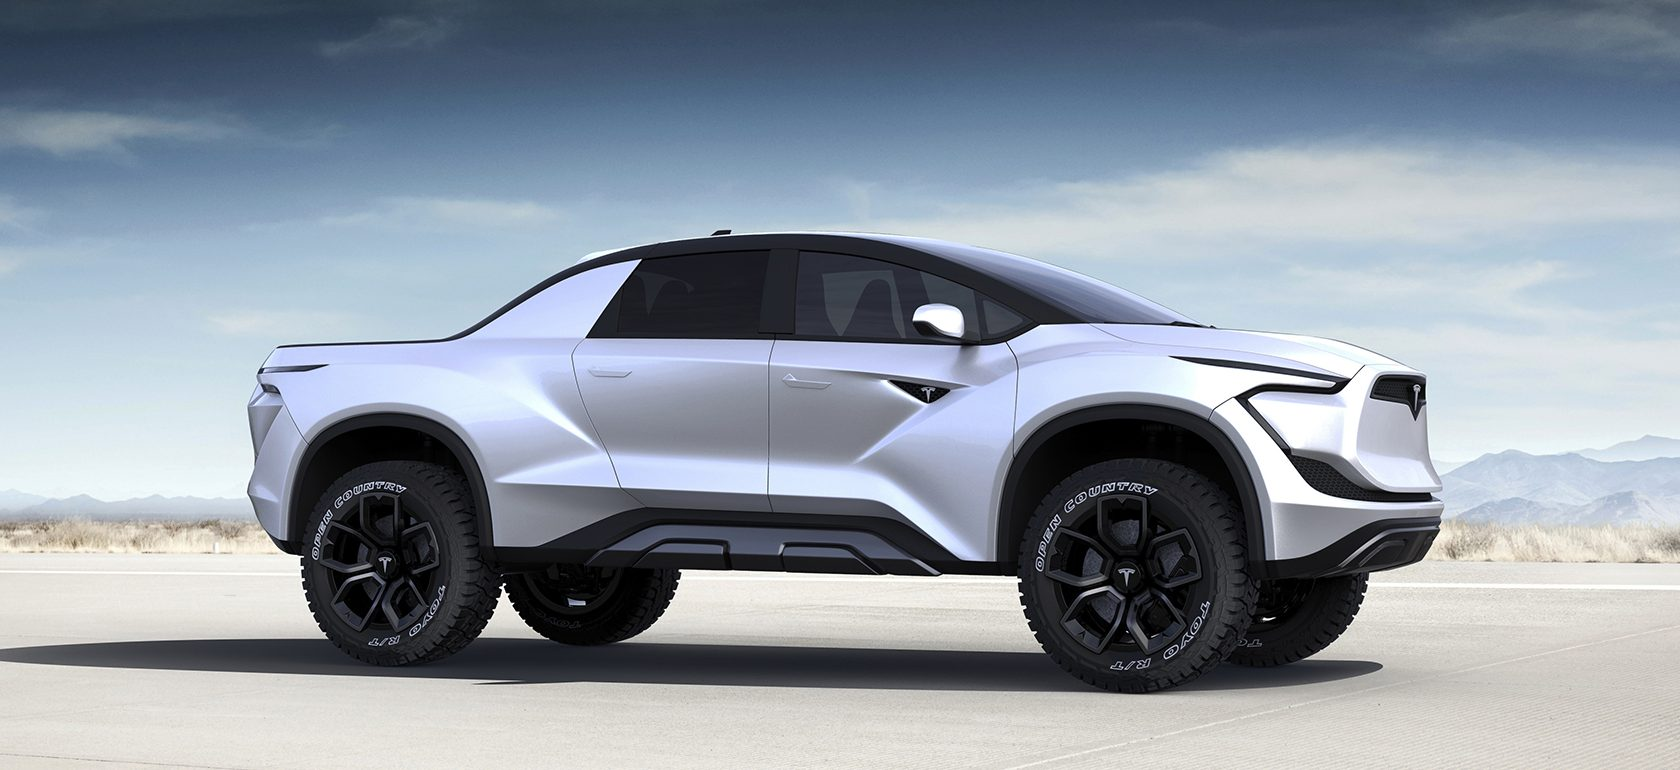 Tesla Pickup Truck imagined – love it or hate it?